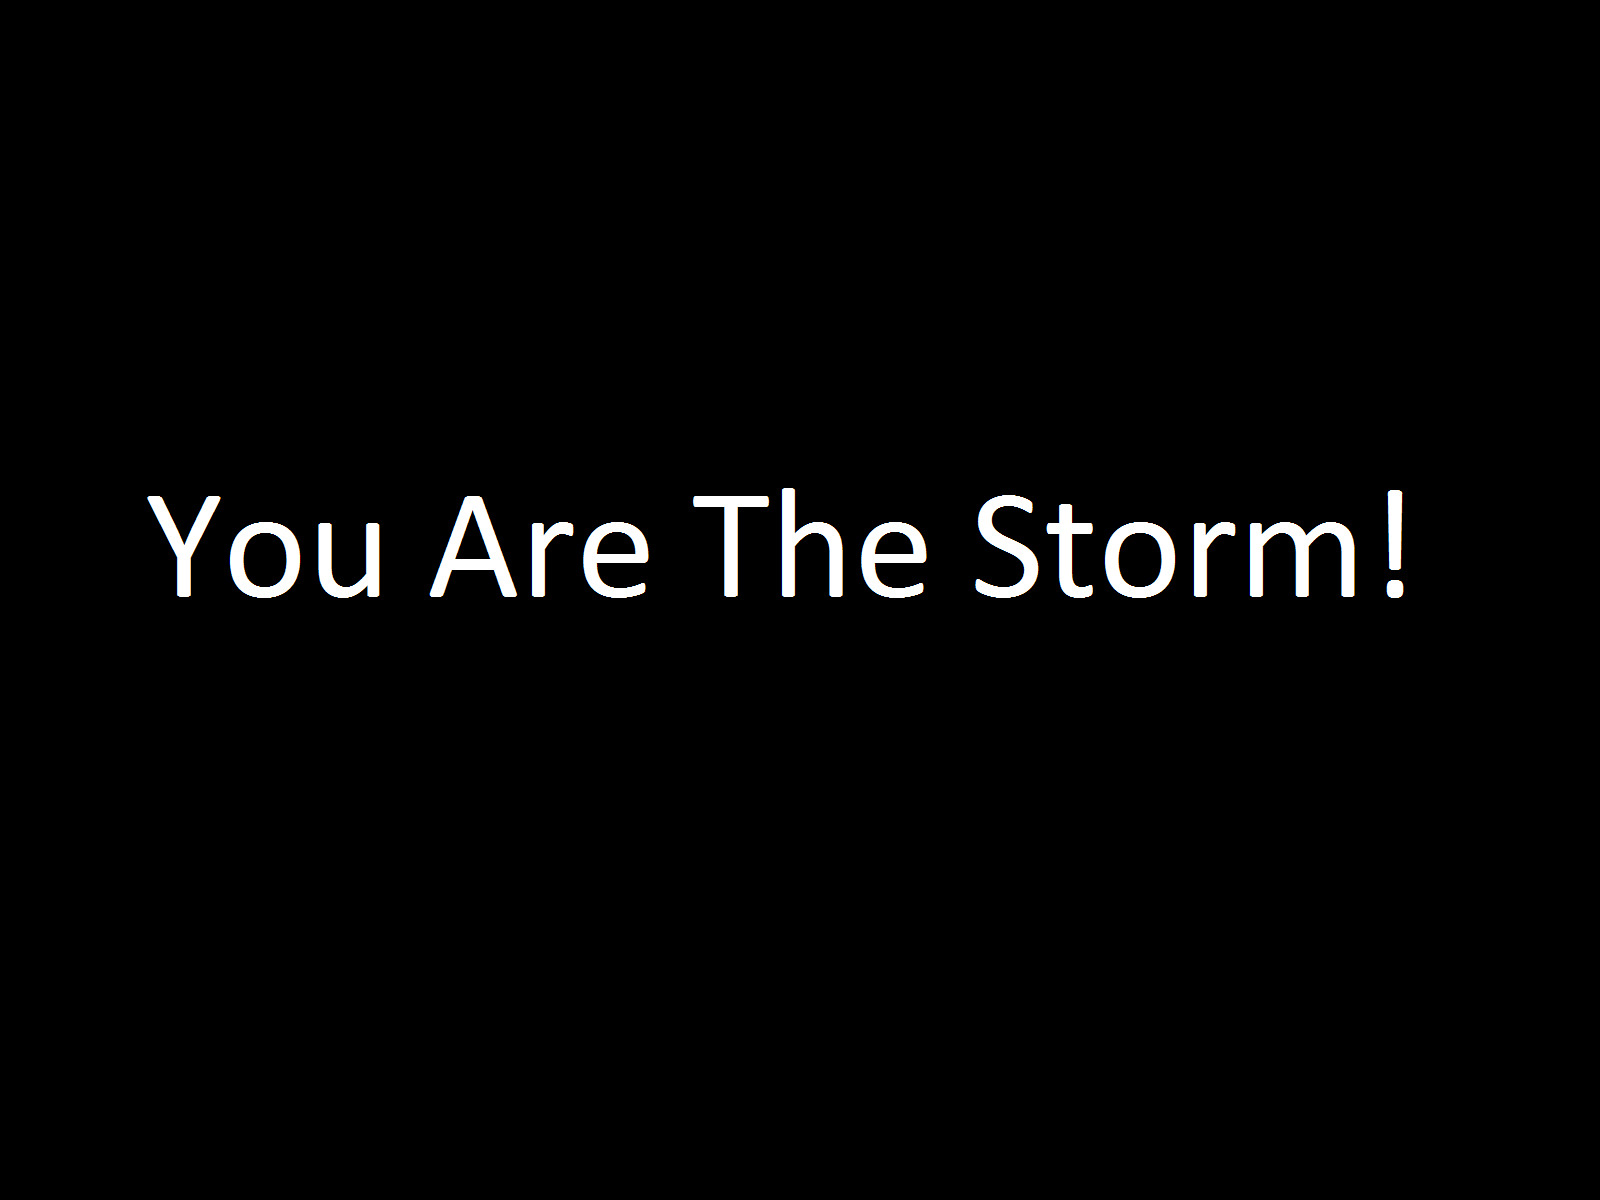 storm You are The HD Wallpaper